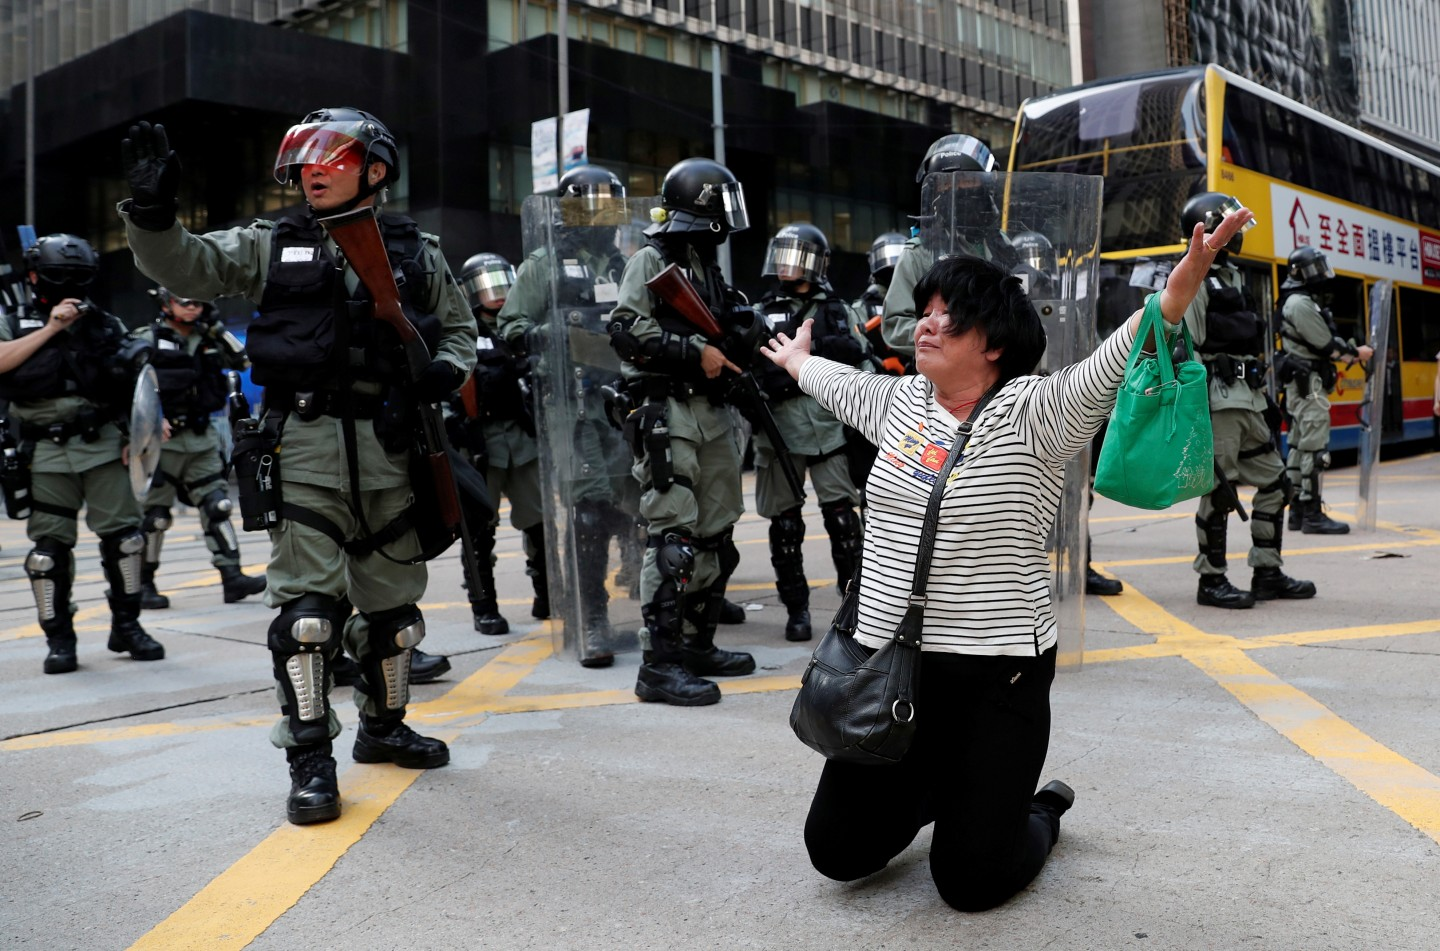 A woman cries and prays in front of riot police during an anti-government protest in Central on November 12, 2019. (REUTERS/Shannon Stapleton)